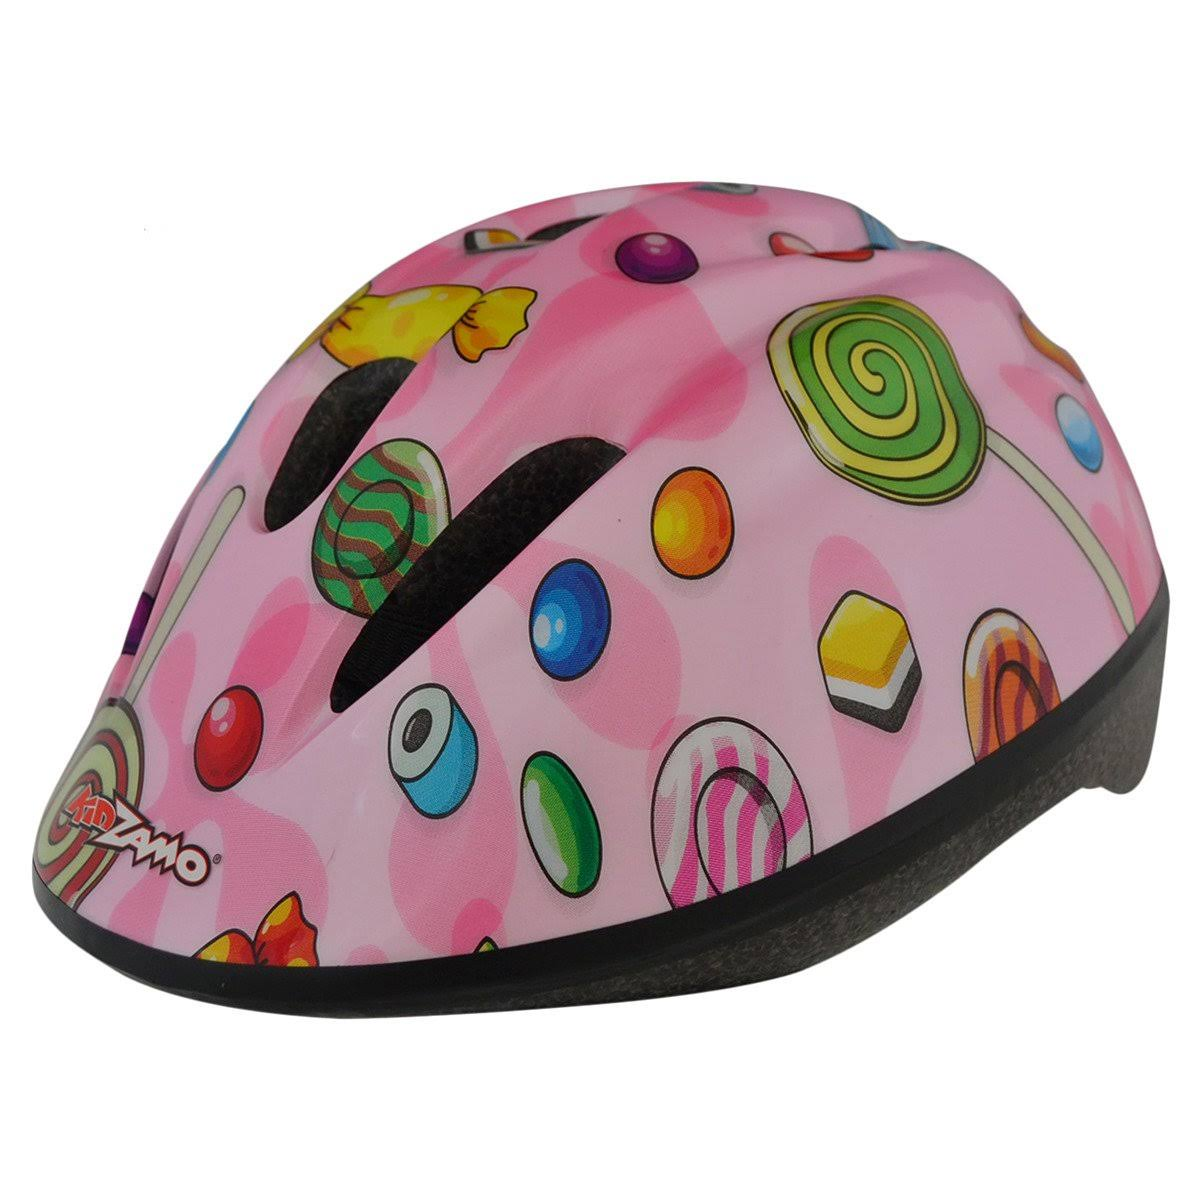 Kidzamo Candy Helmet Bike Sm-Md Pk